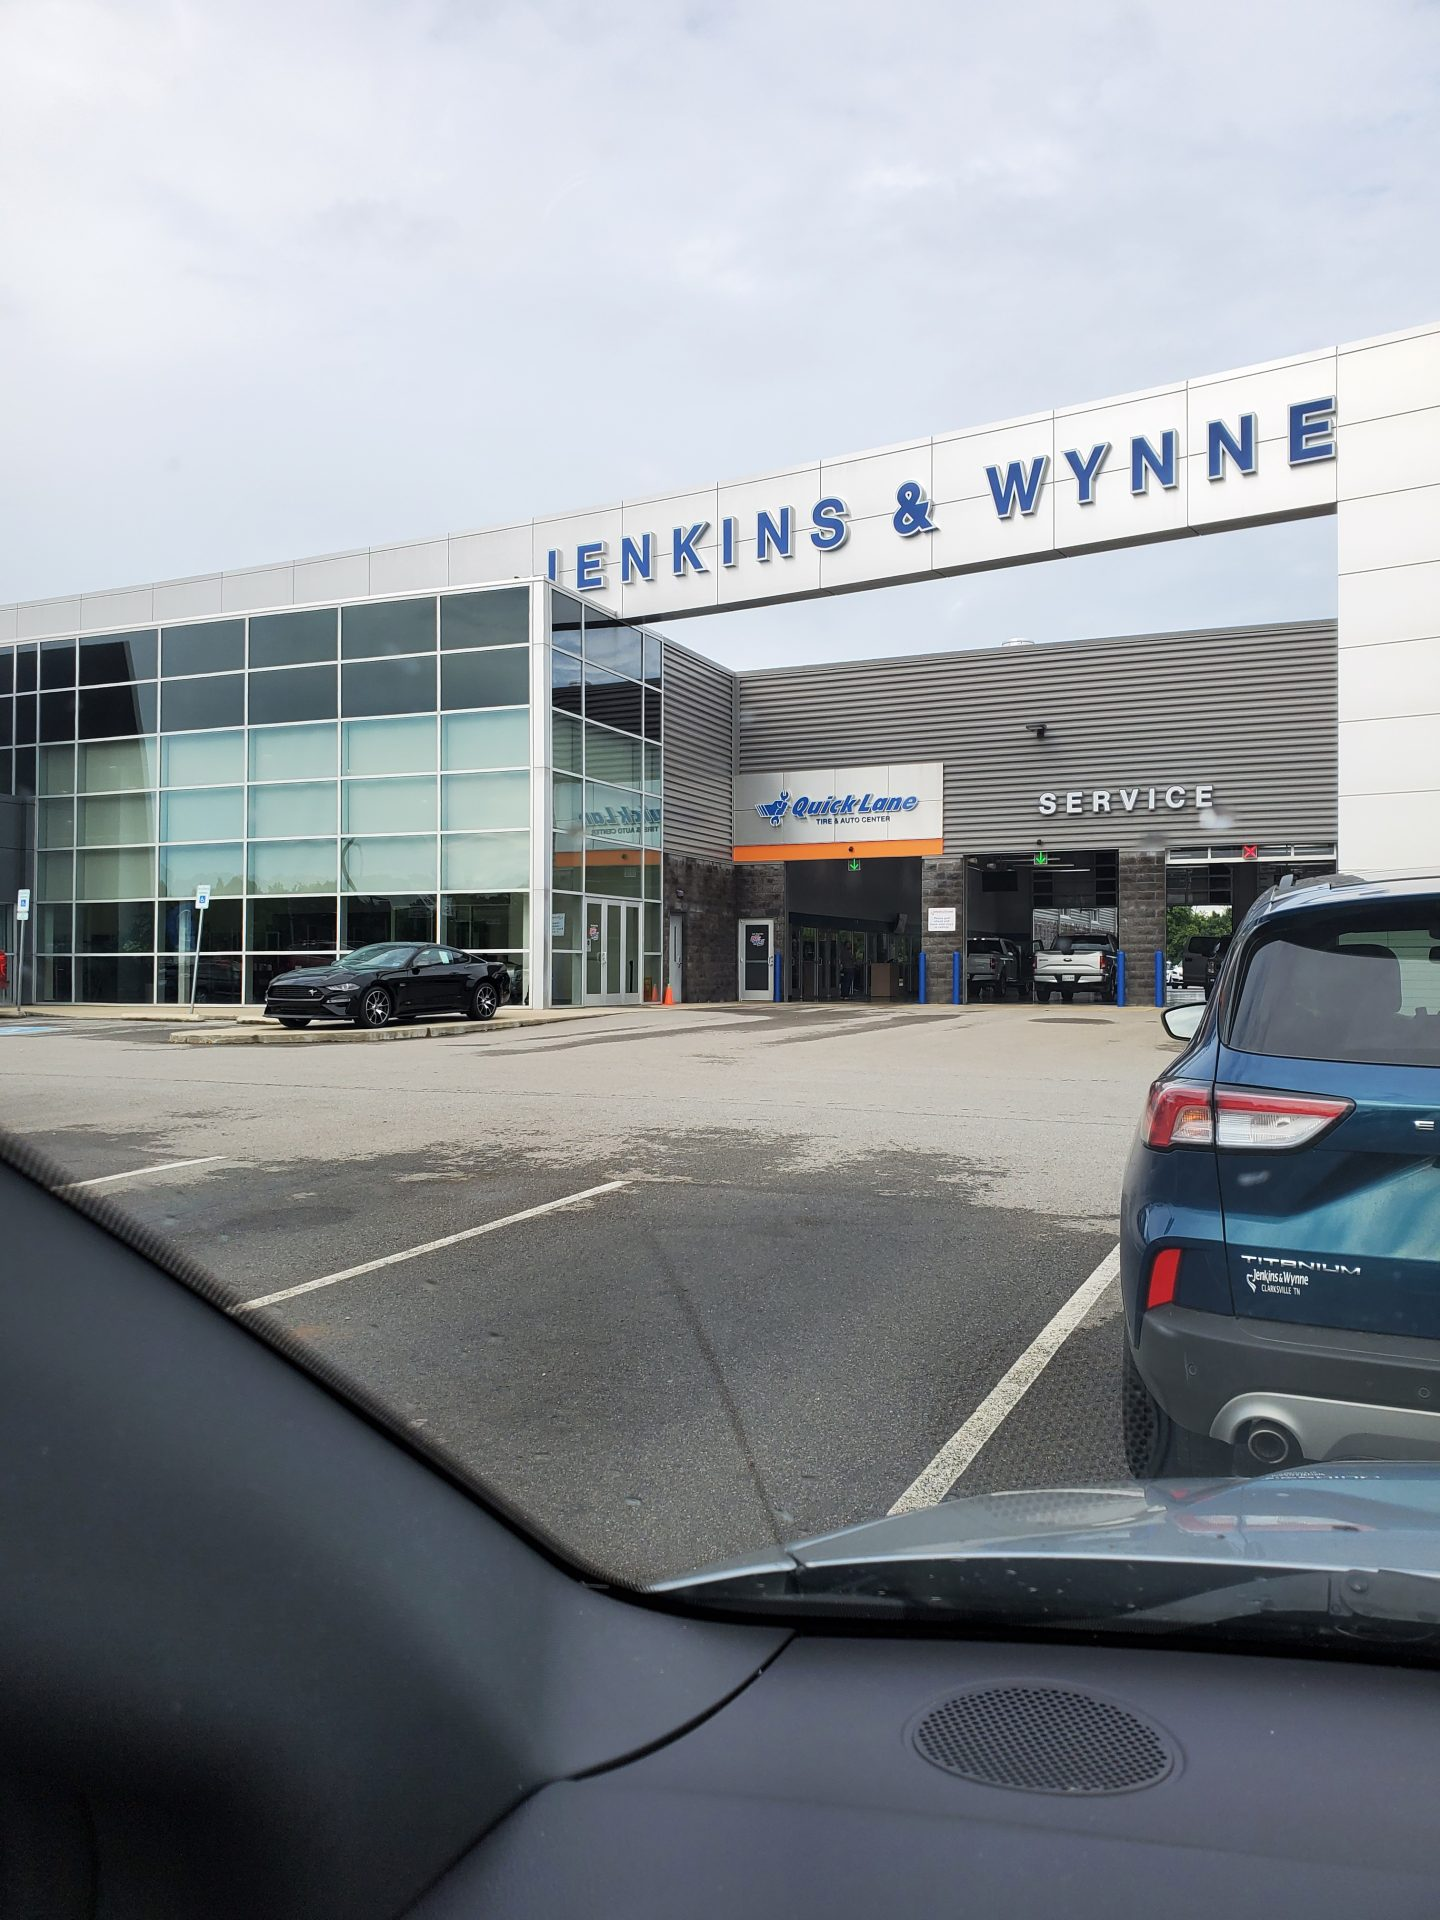 Jenkins and Wynne Ford